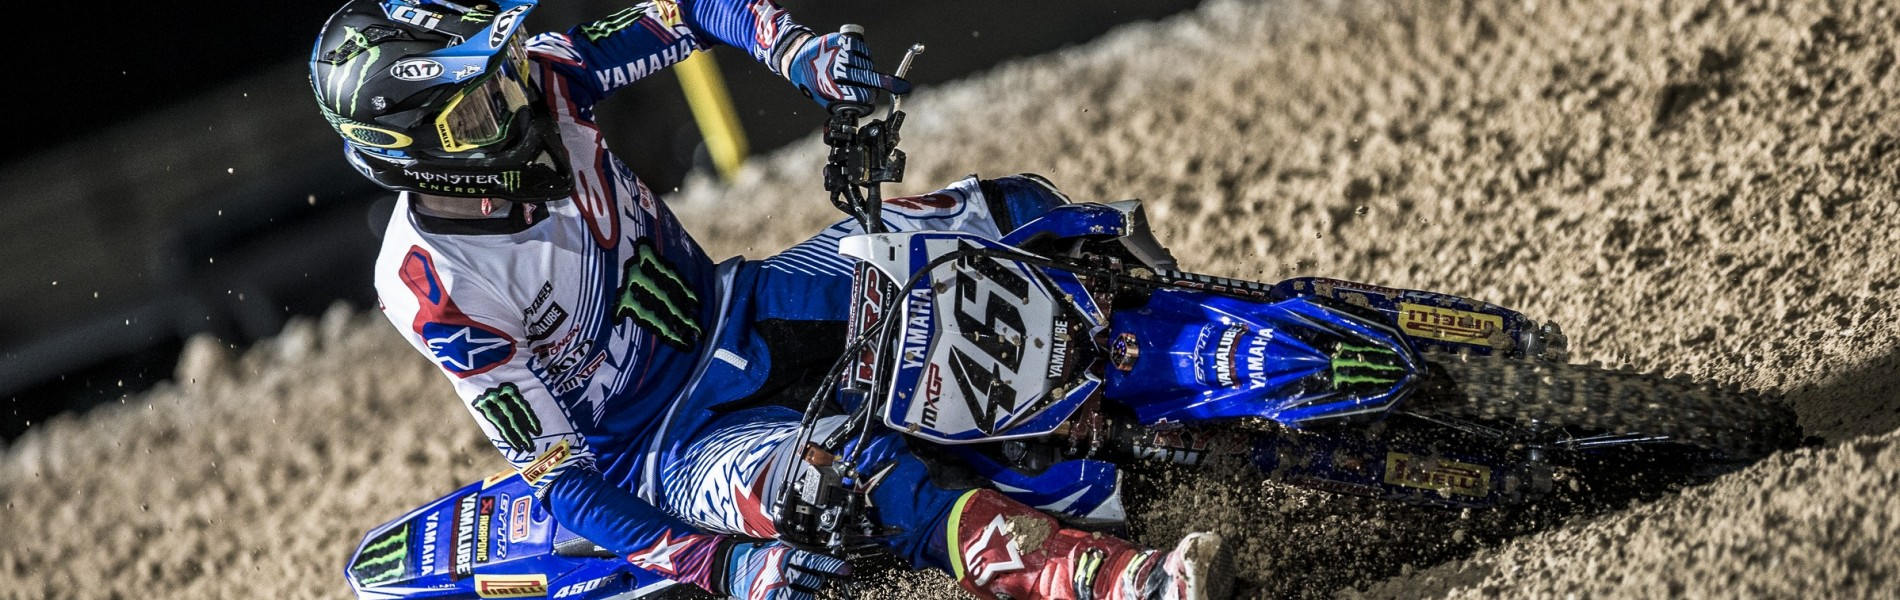 Romain Febvre at the 2017 Grand Prix of Qatar